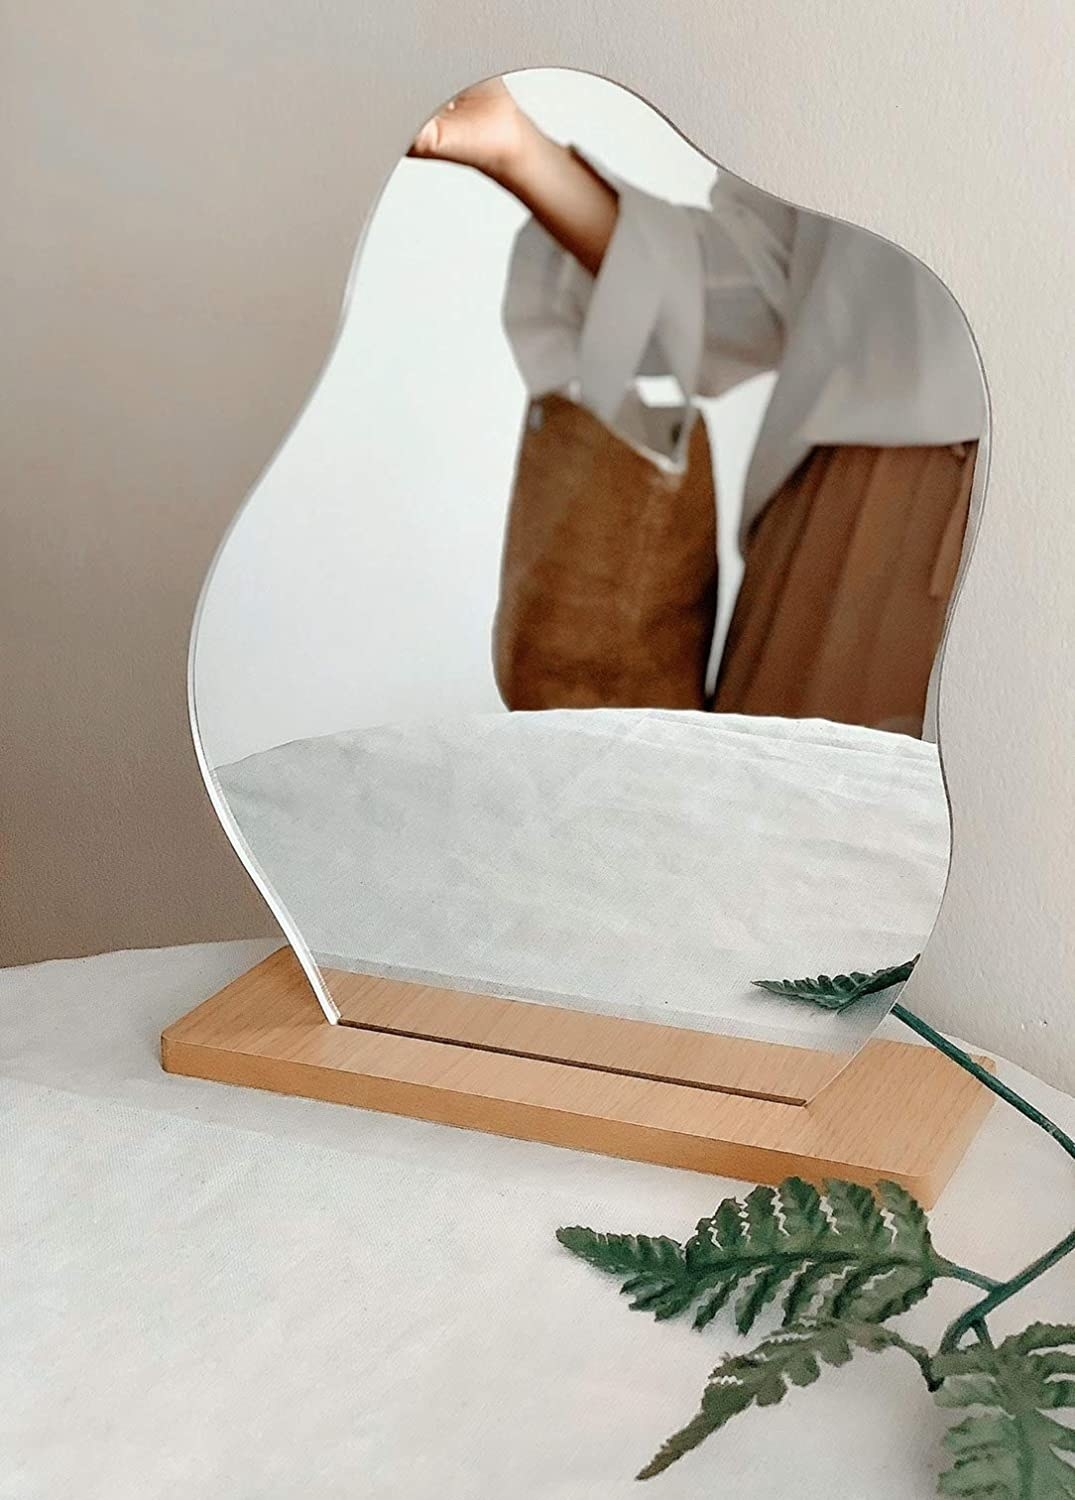 Curvy, small mirror on wooden base